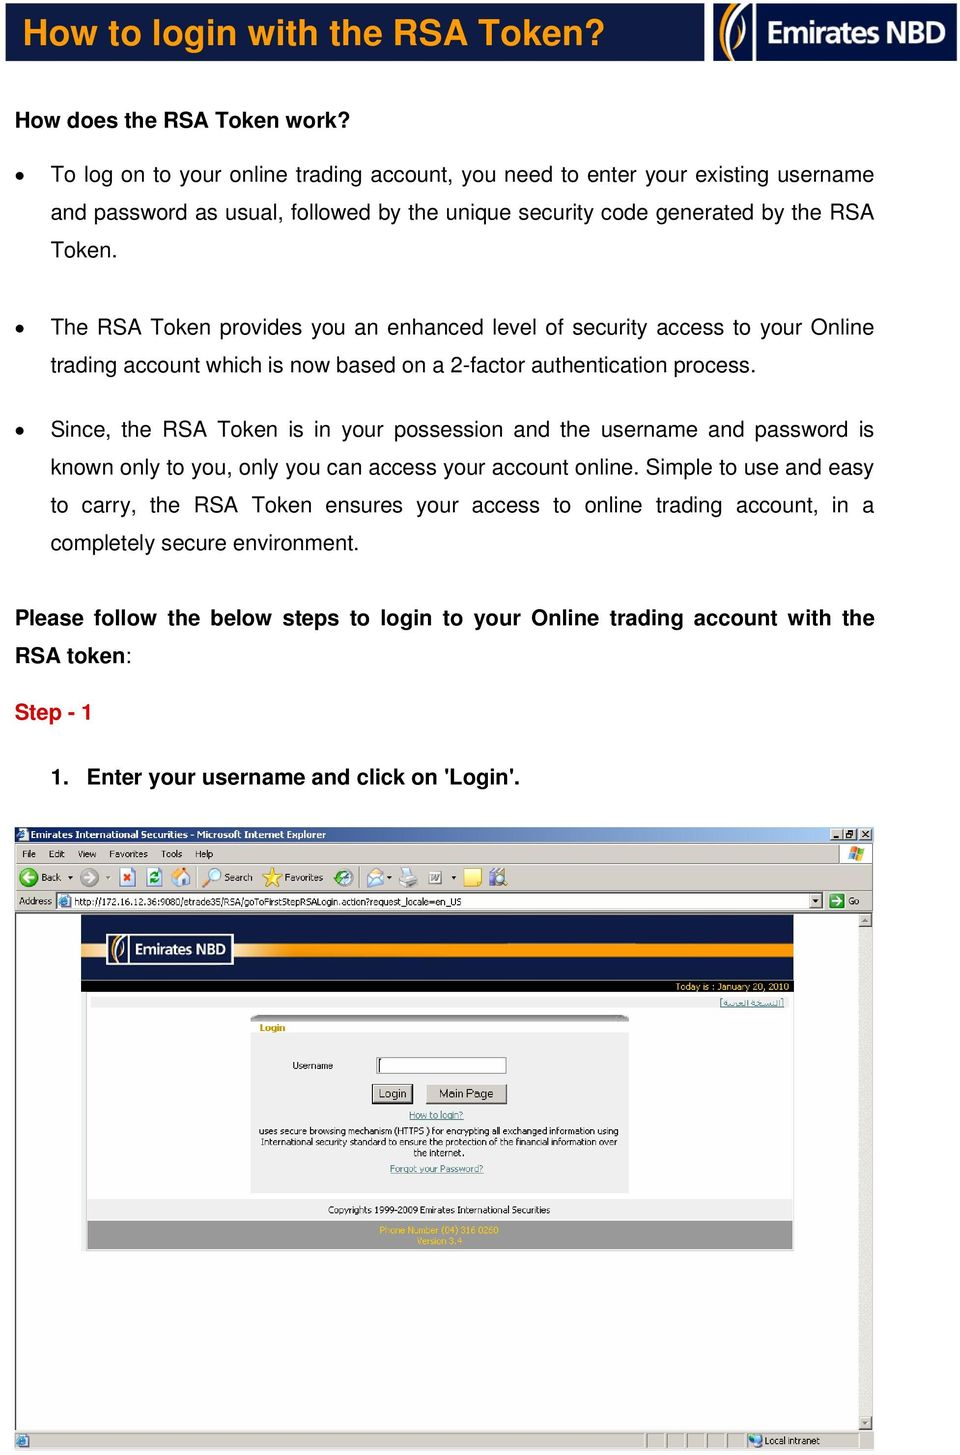 How to login with the RSA Token? - PDF